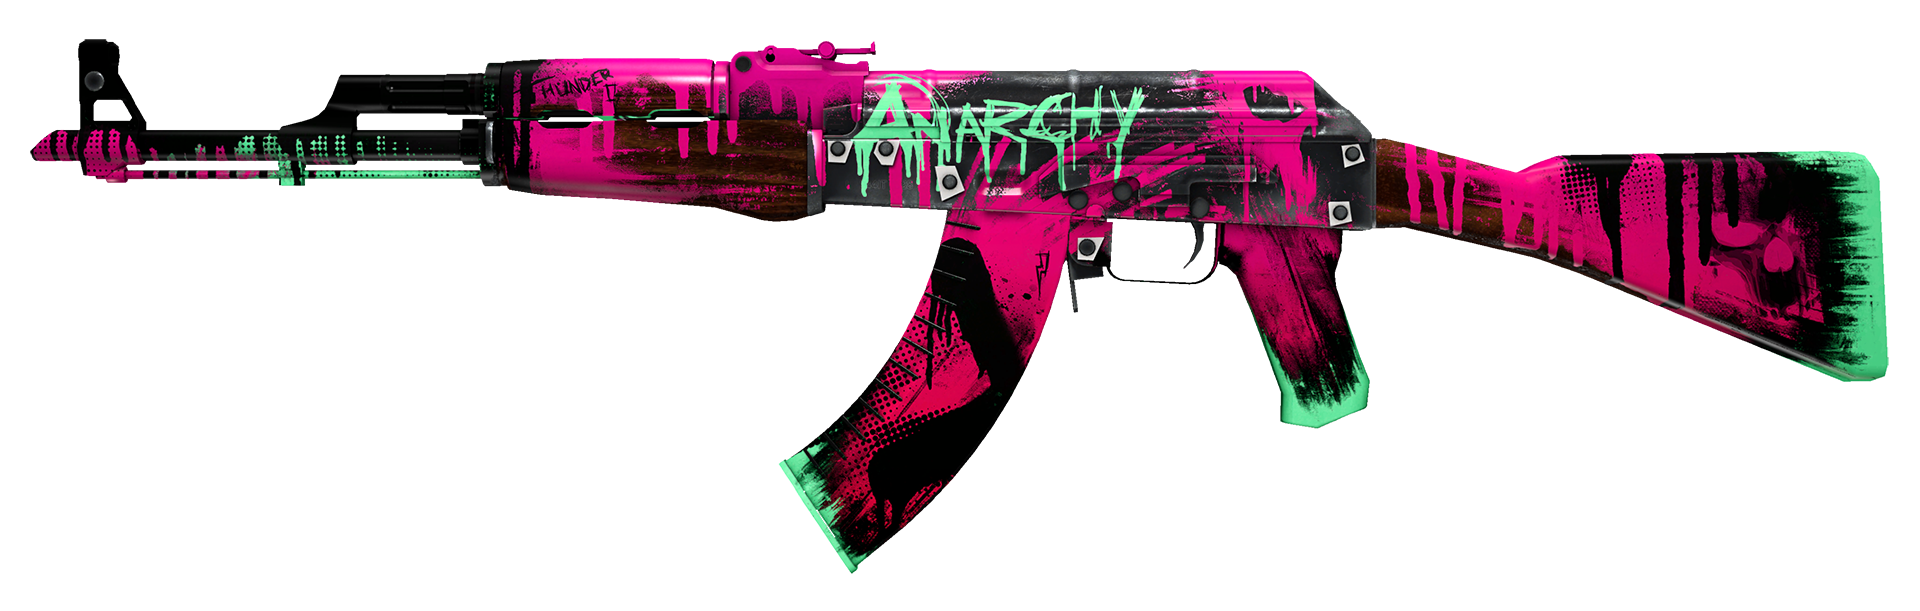 AK-47 Neon Revolution Large Rendering